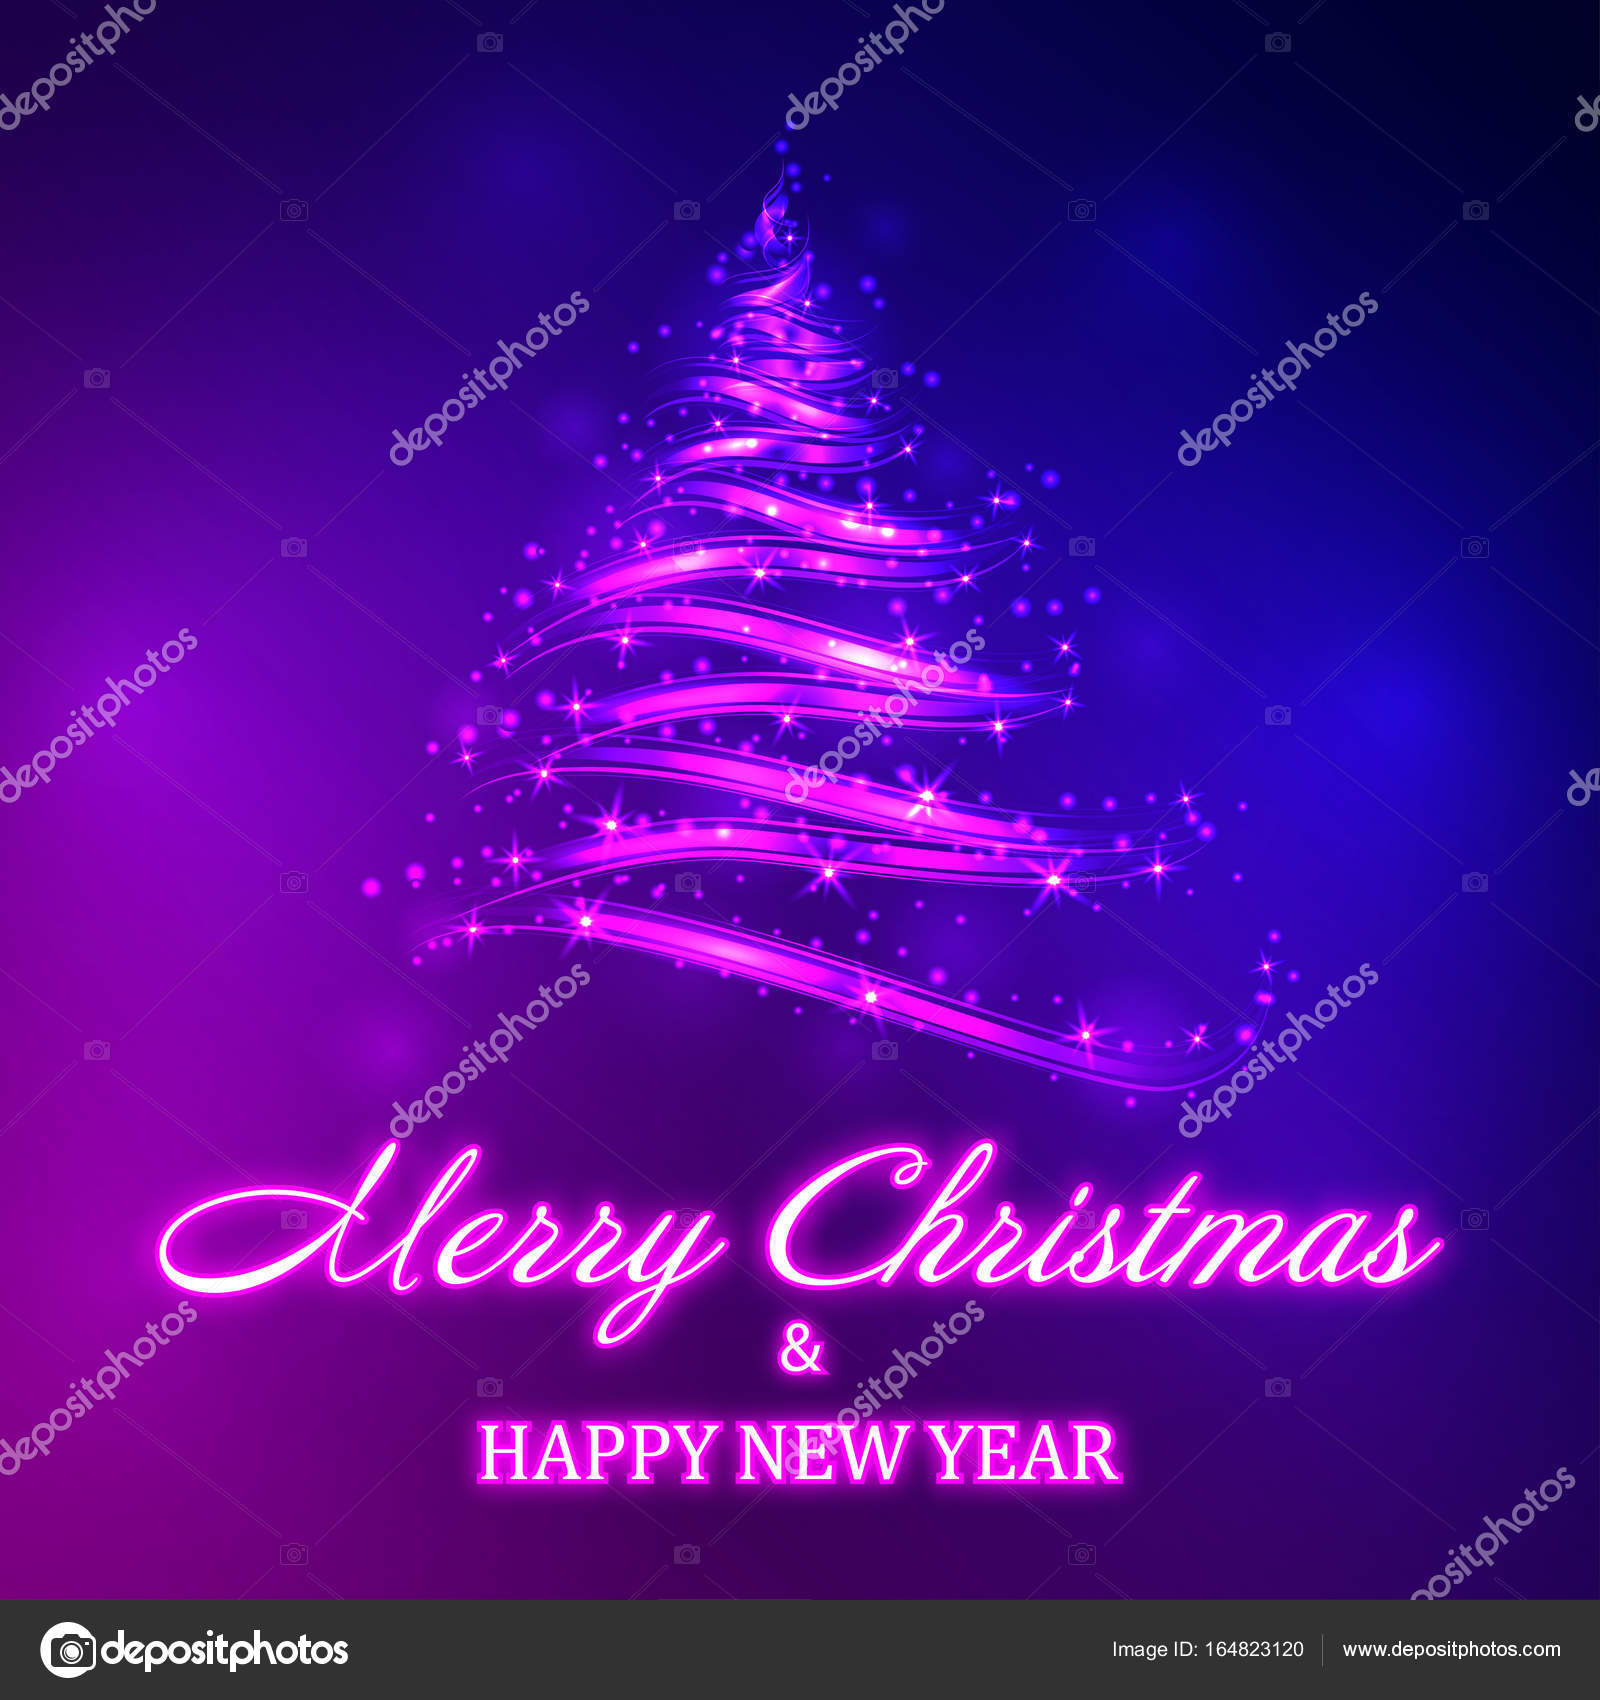 Vector Shiny Christmas Tree With Neon Merry Christmas And Happy